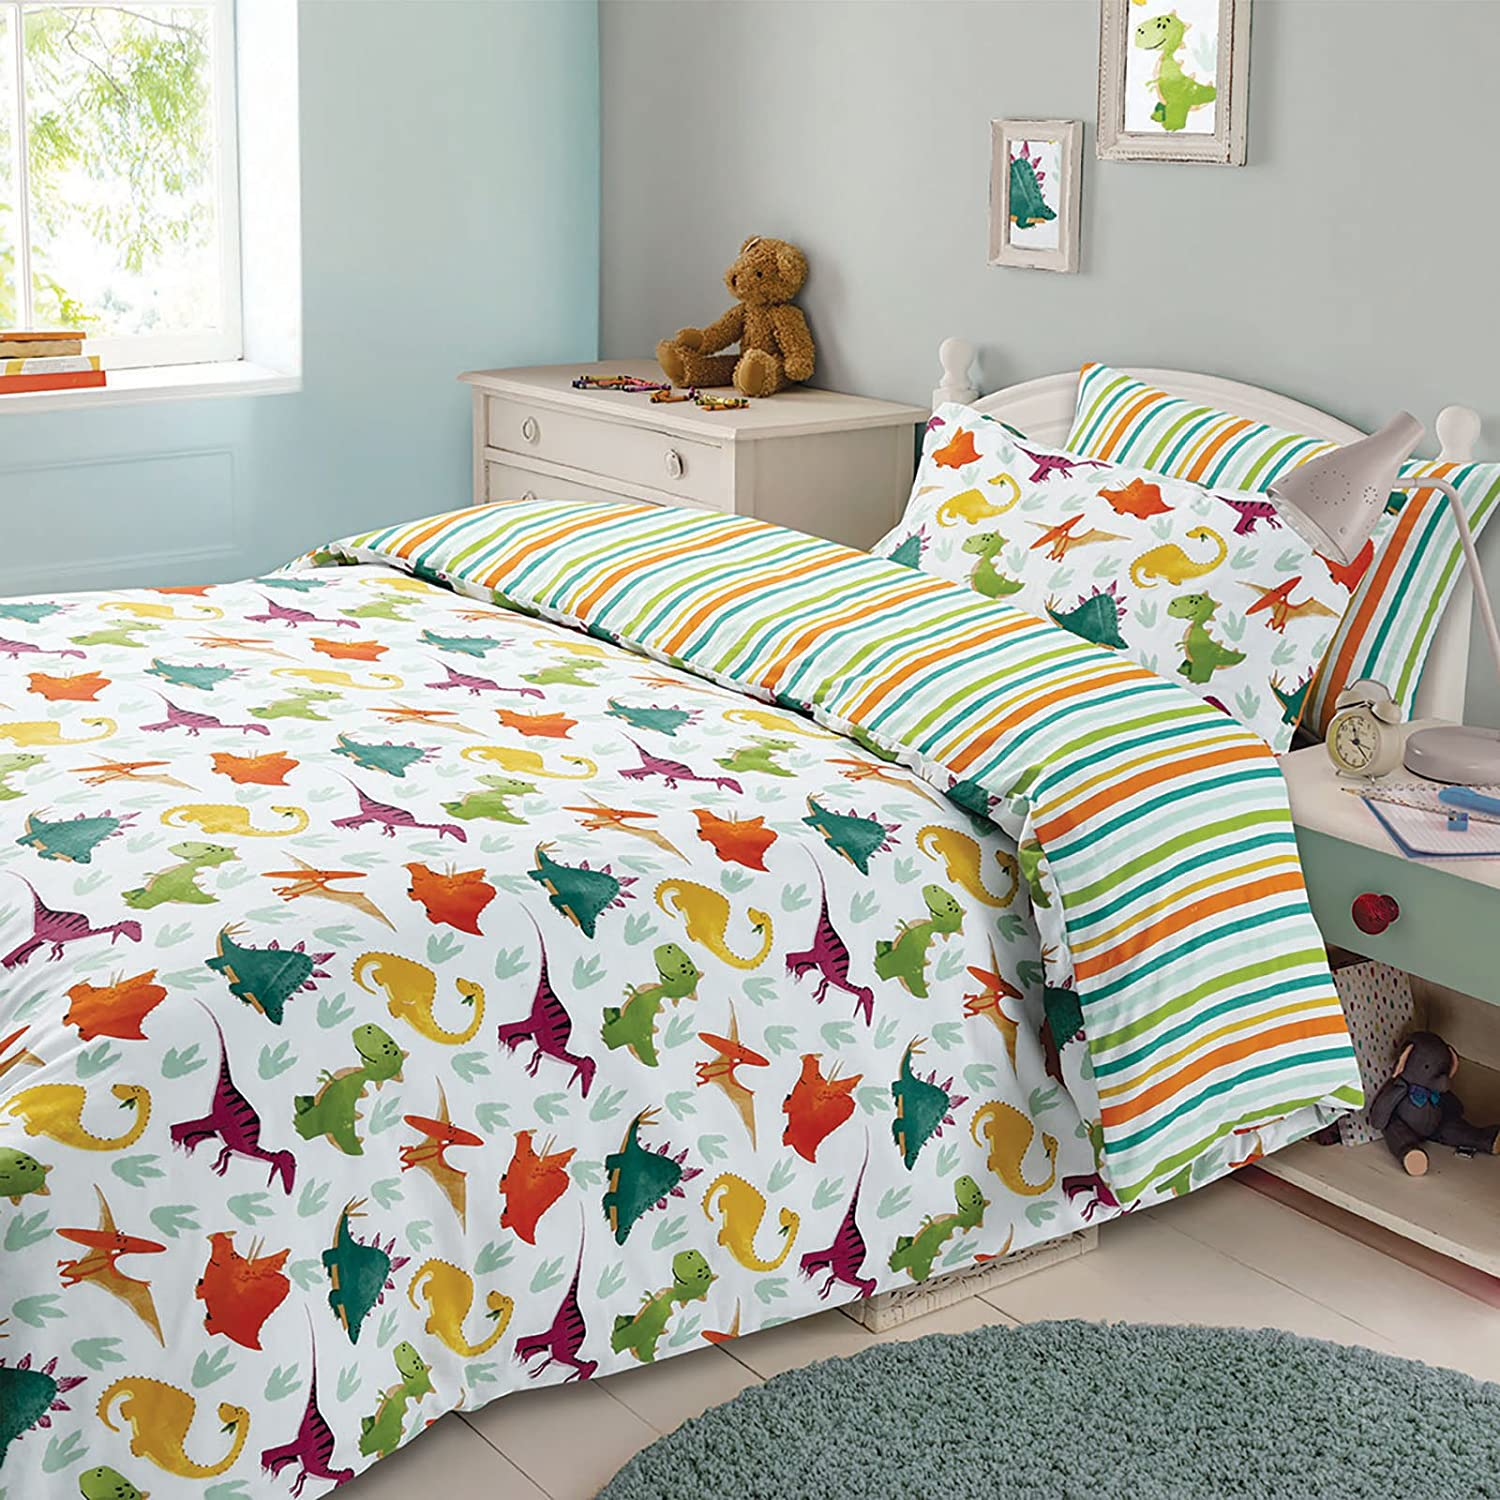 quilts coverlet s paisley macy pin collection bed bedspreads coverlets echo hudson bedding bath